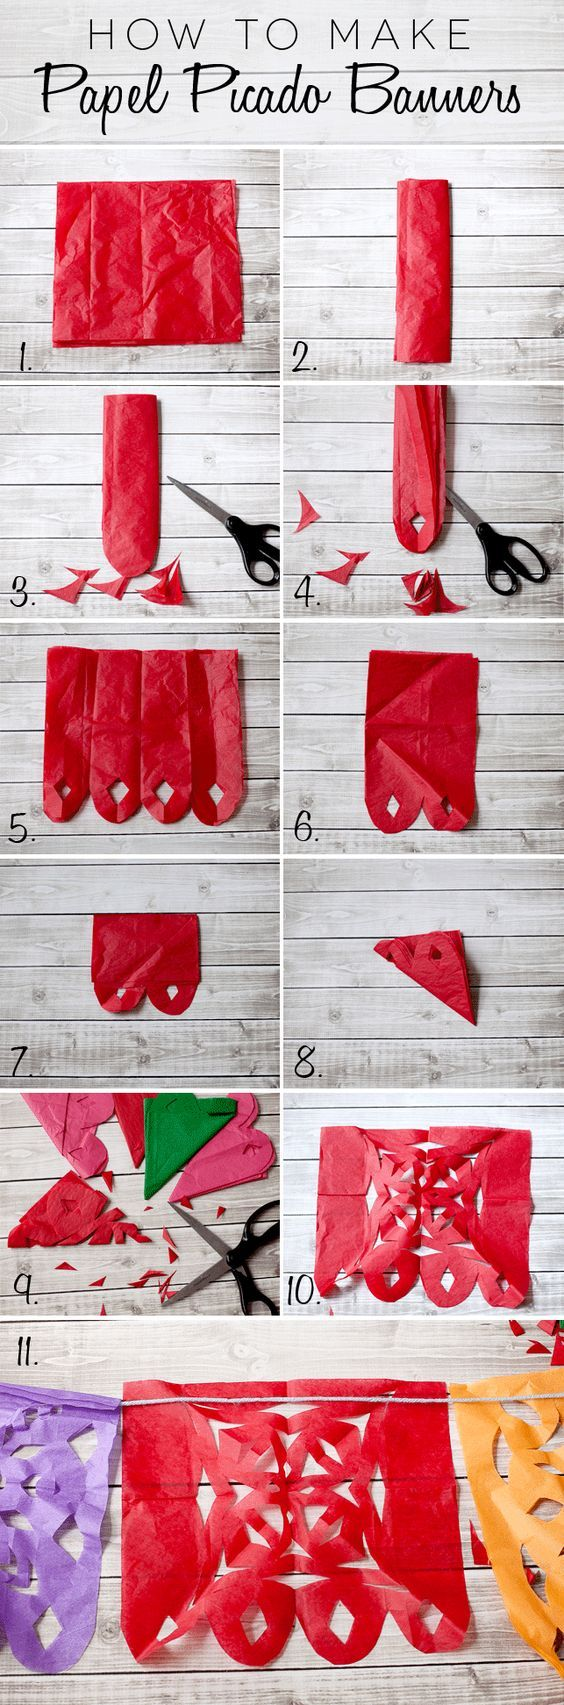 Looking for an inexpensive but eye catching way to make  mexican fiesta decor? Click for the full instructions on how to Cinco de Mayo Papel Picado banners. Wiith a few snips of the scissors, bring your celebration from so-so to spectacular!